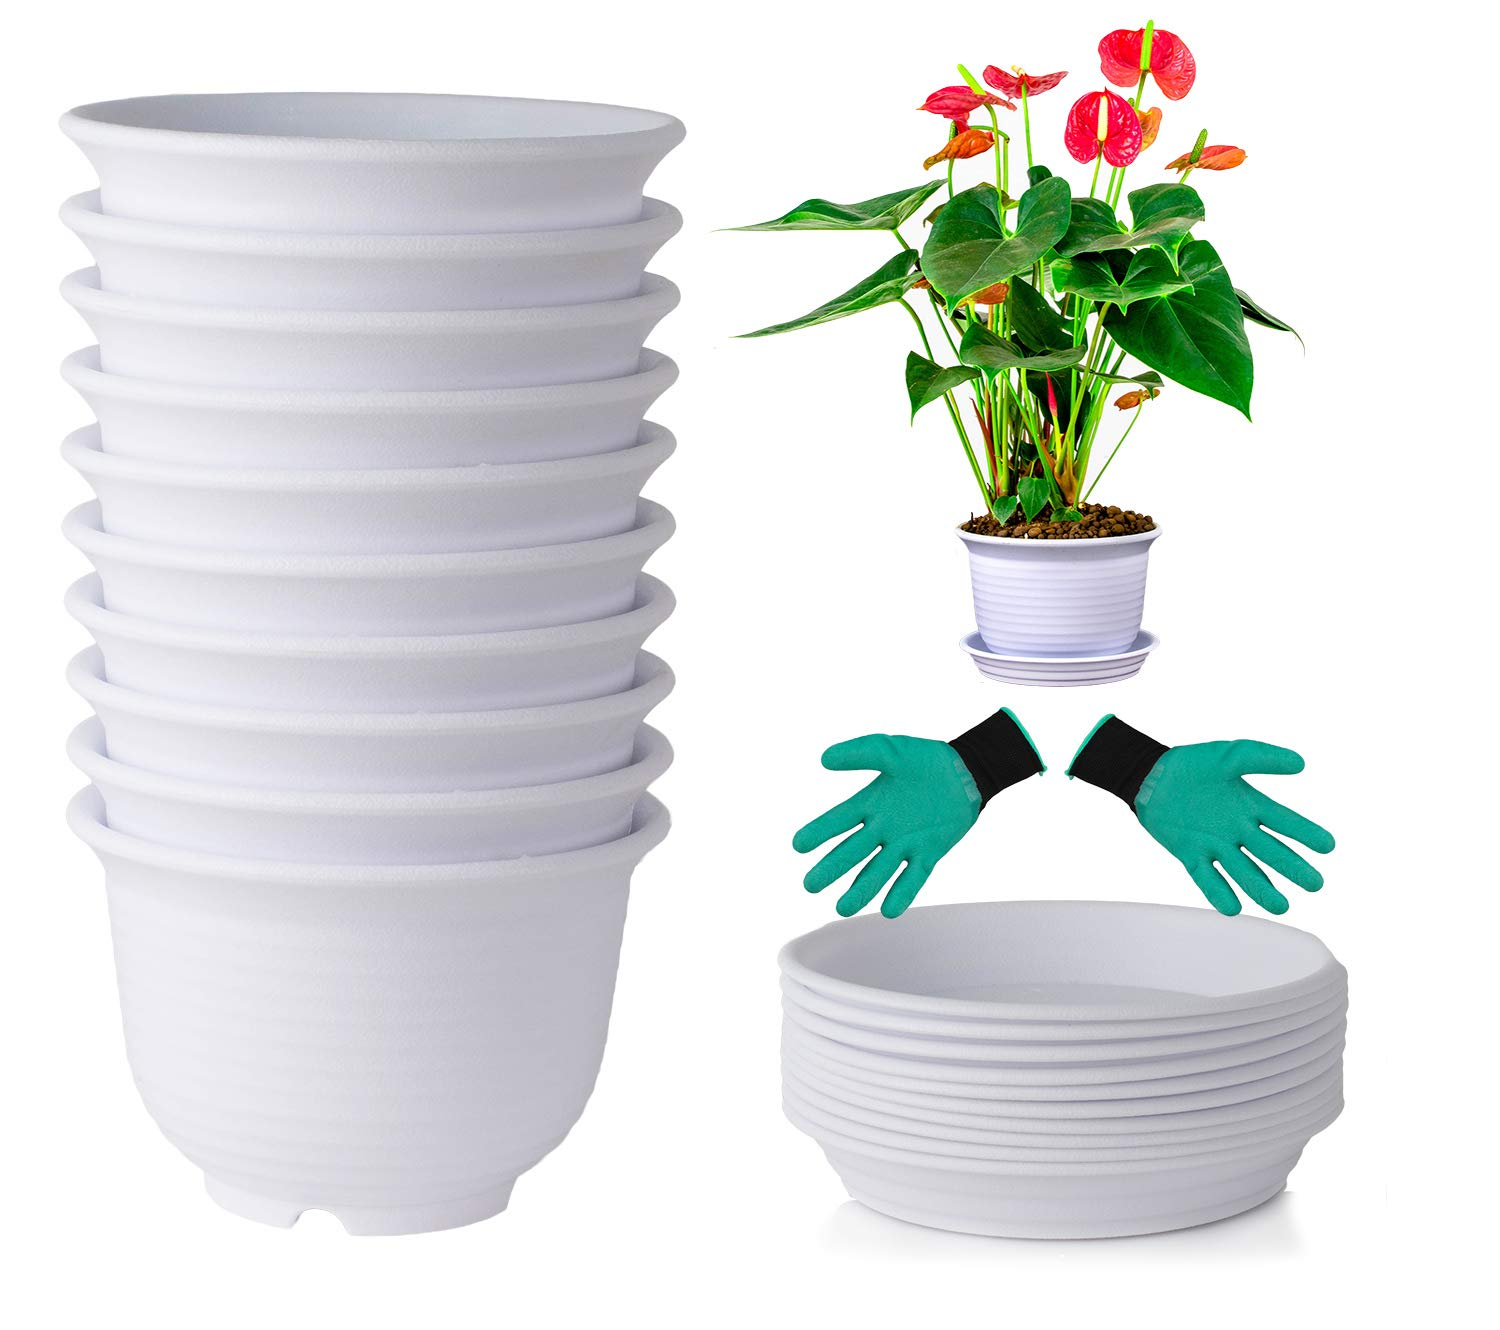 DeElf 6 Inch Plastic Round Drainage Plant Pots Containers with Trays for Indoor and Outdoor Herbs, Succulents, Cactus and Flowers 10 Pack